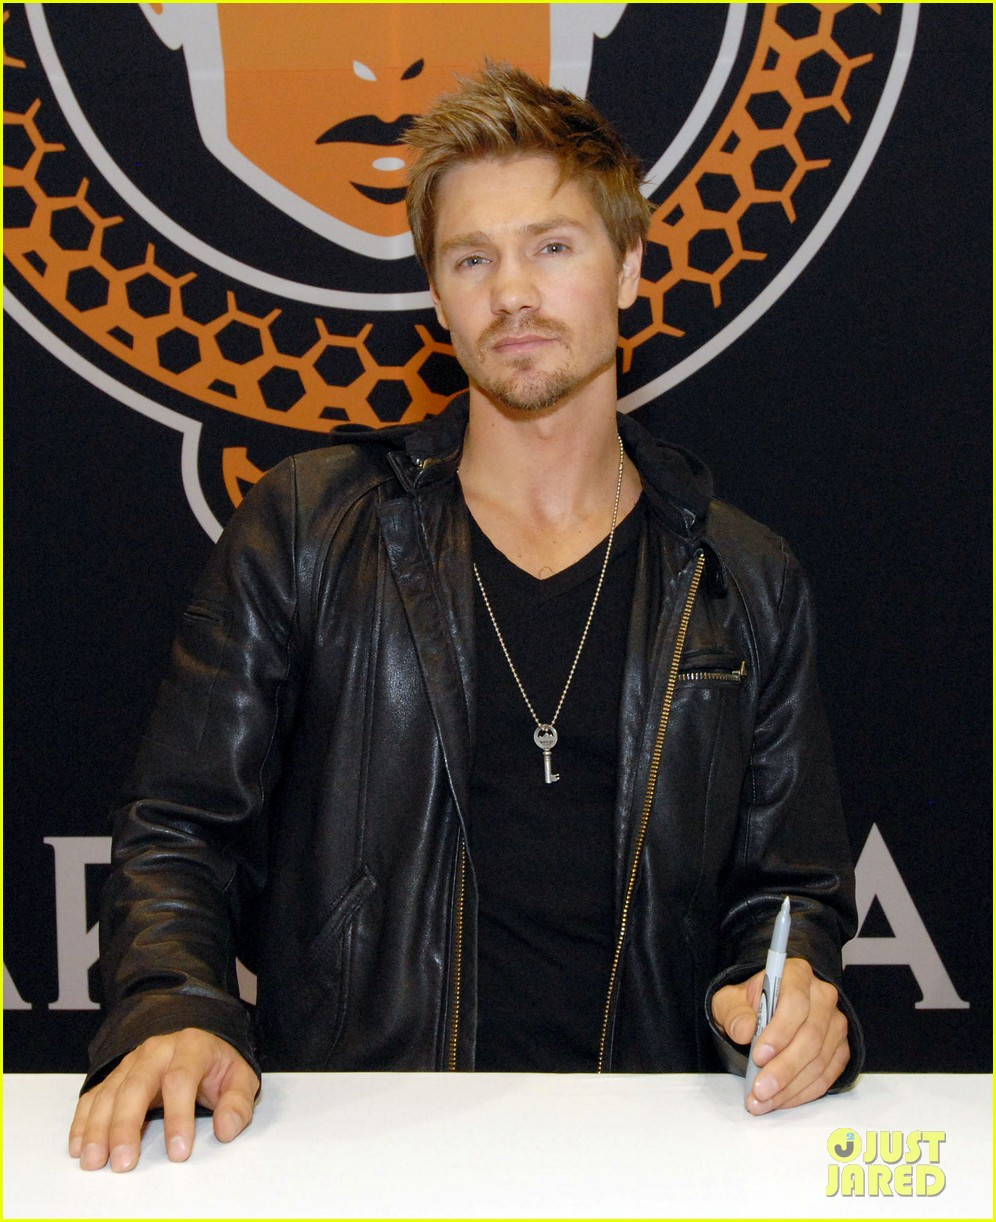 chad michael murray chicago comic expo